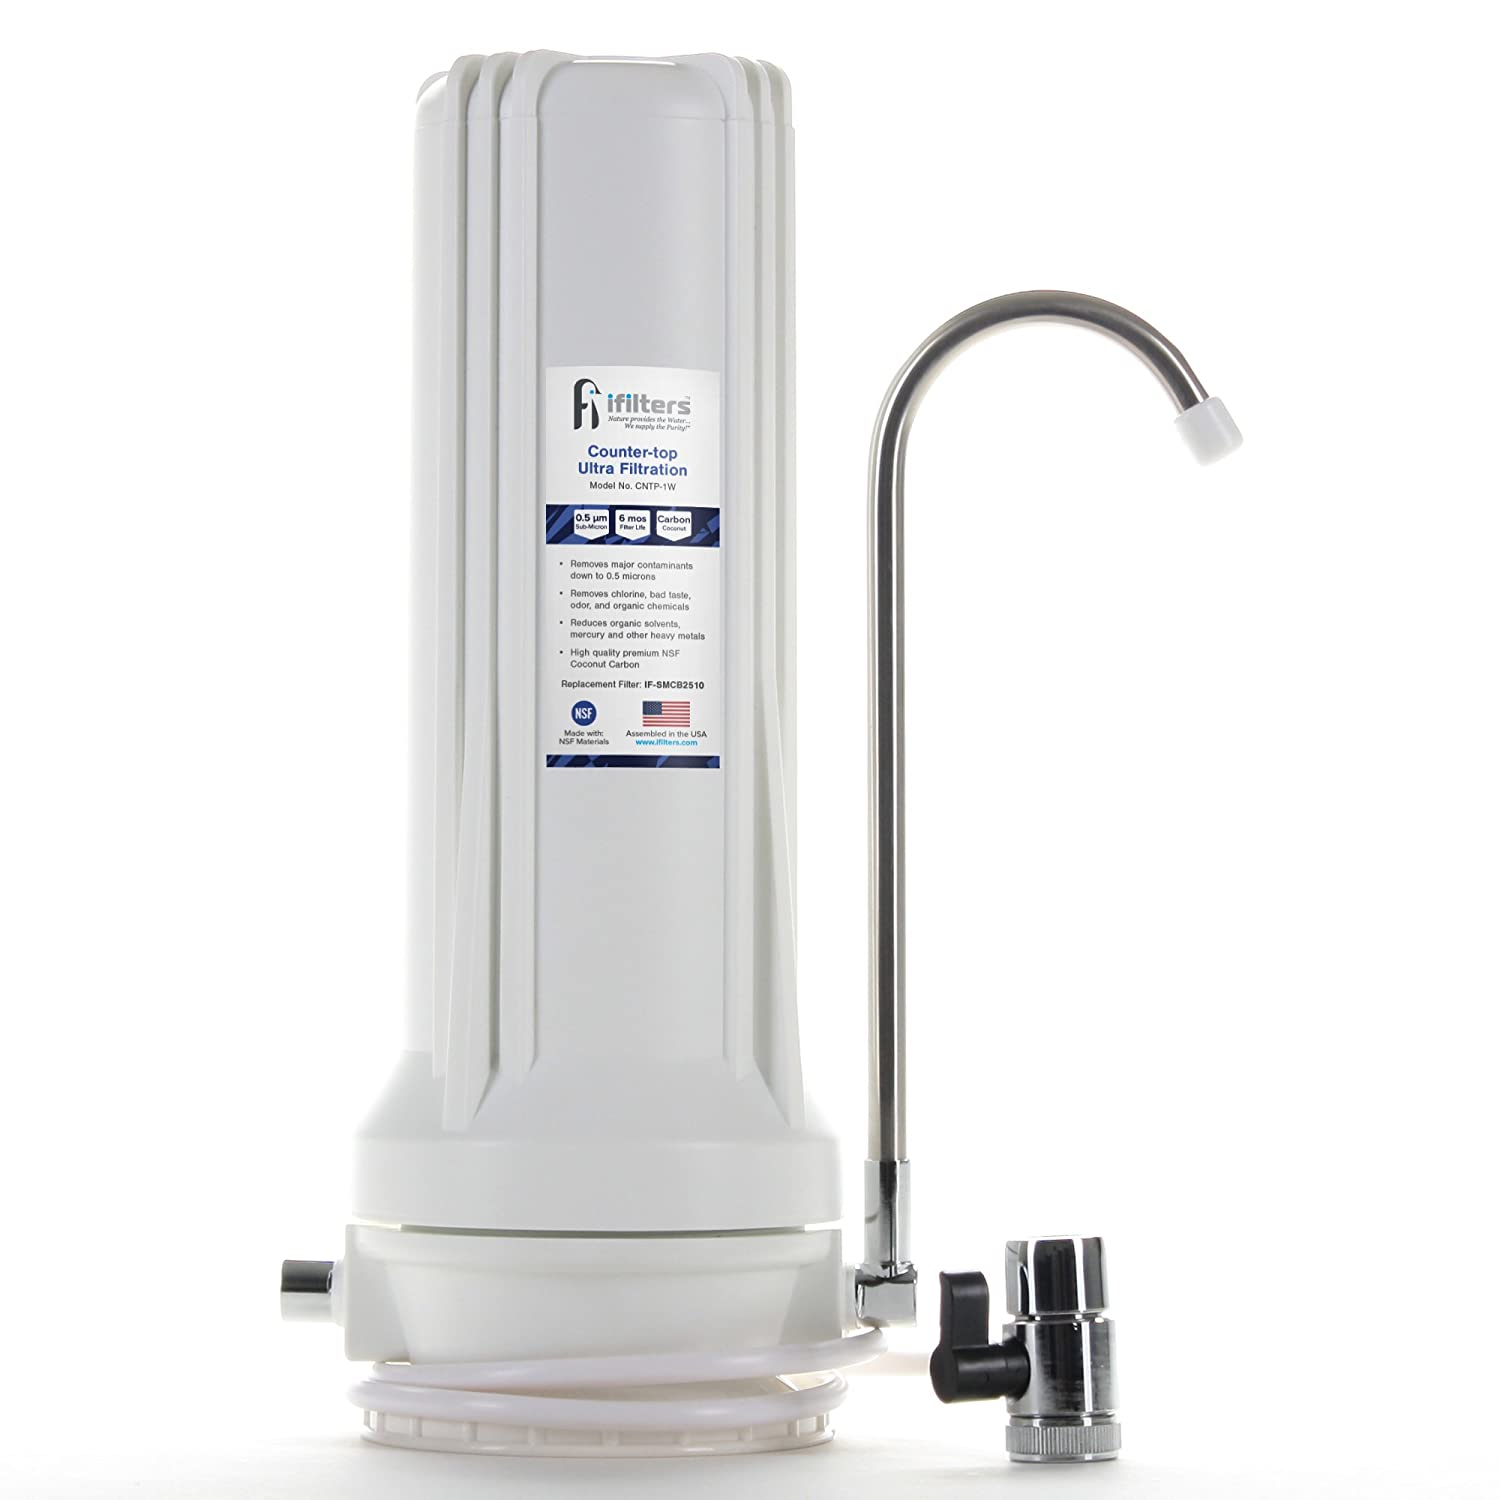 Countertop Ultra Drinking Water Filter for VOCs Cysts Pesticides Herbicides Chlorine Taste & Odor - White, Built in USA